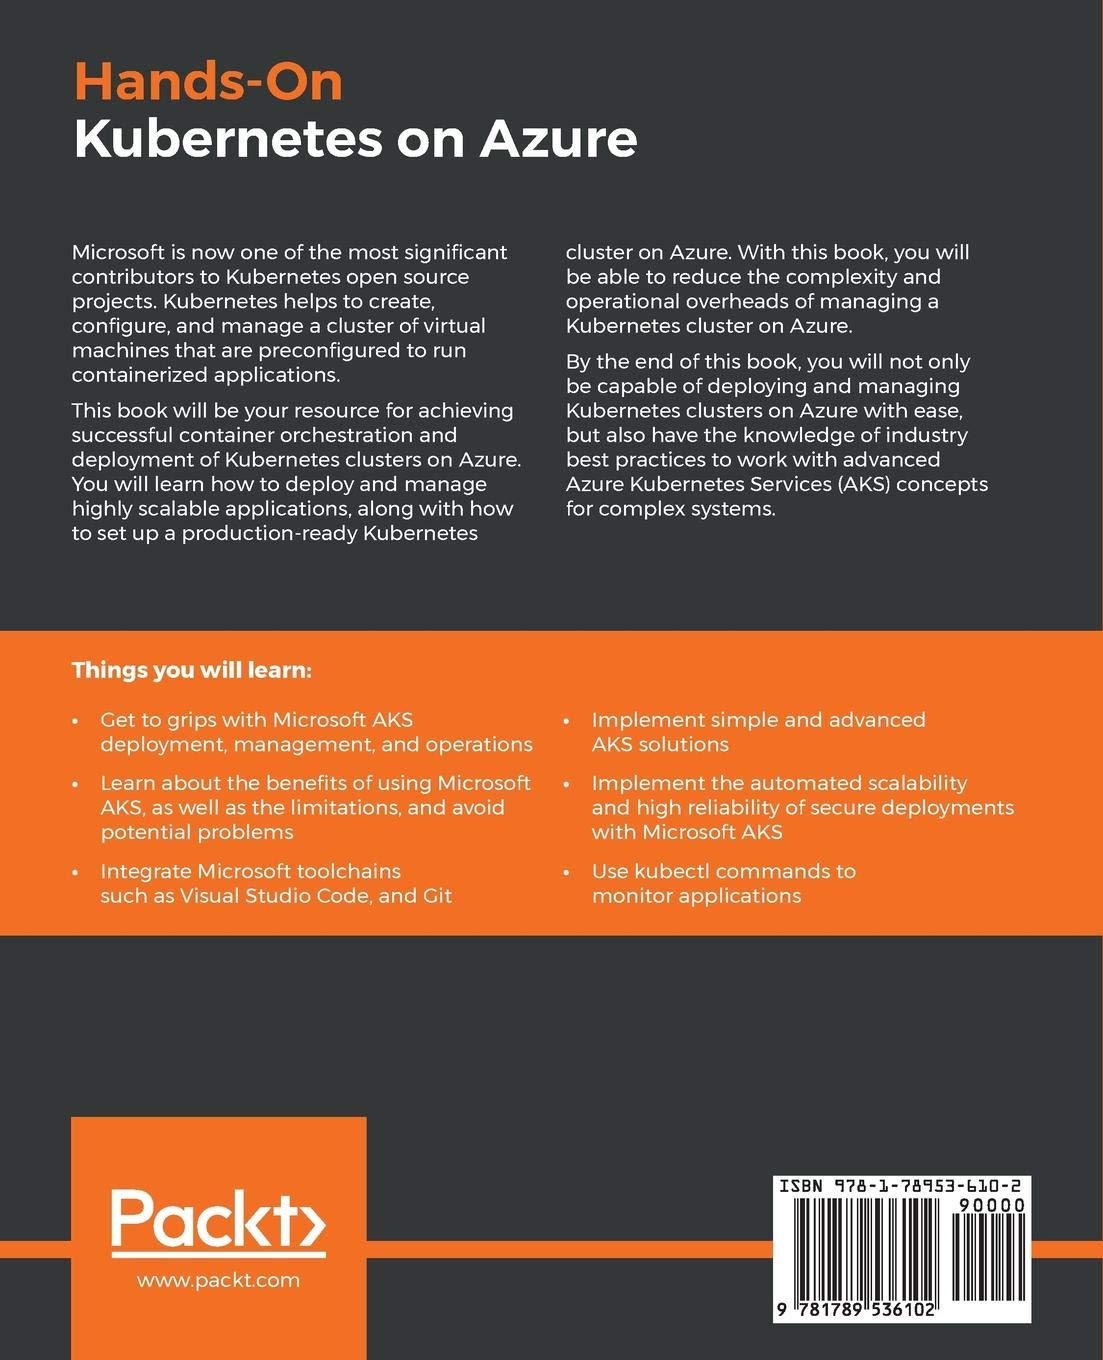 Buy Hands-On Kubernetes on Azure: Run your applications securely and